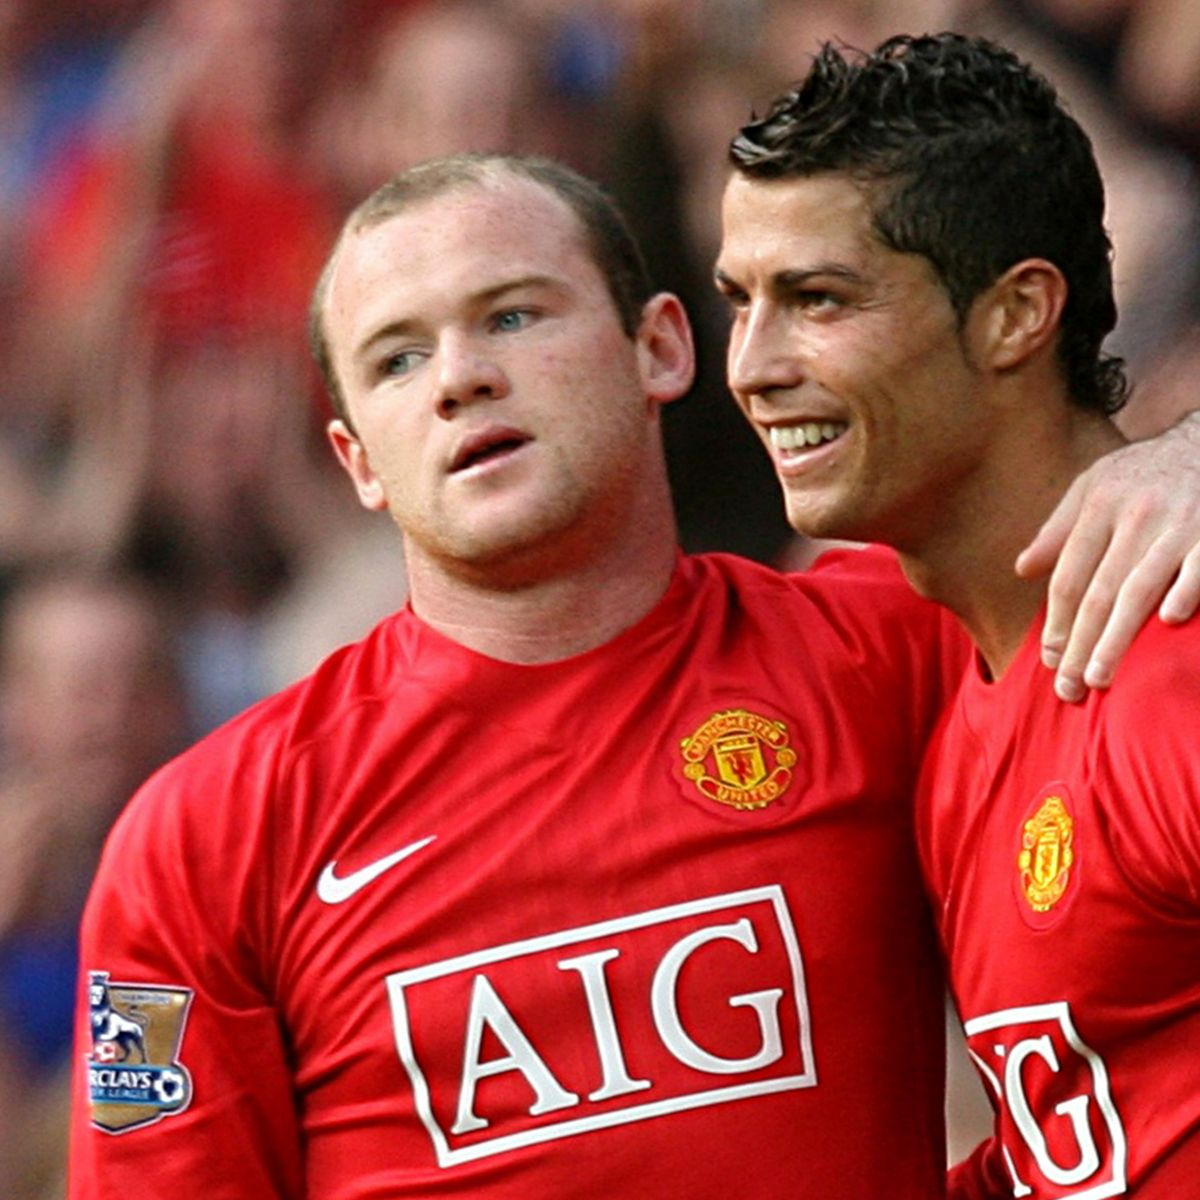 Rooney Reacts To Cristiano Ronaldo's Link To Man City